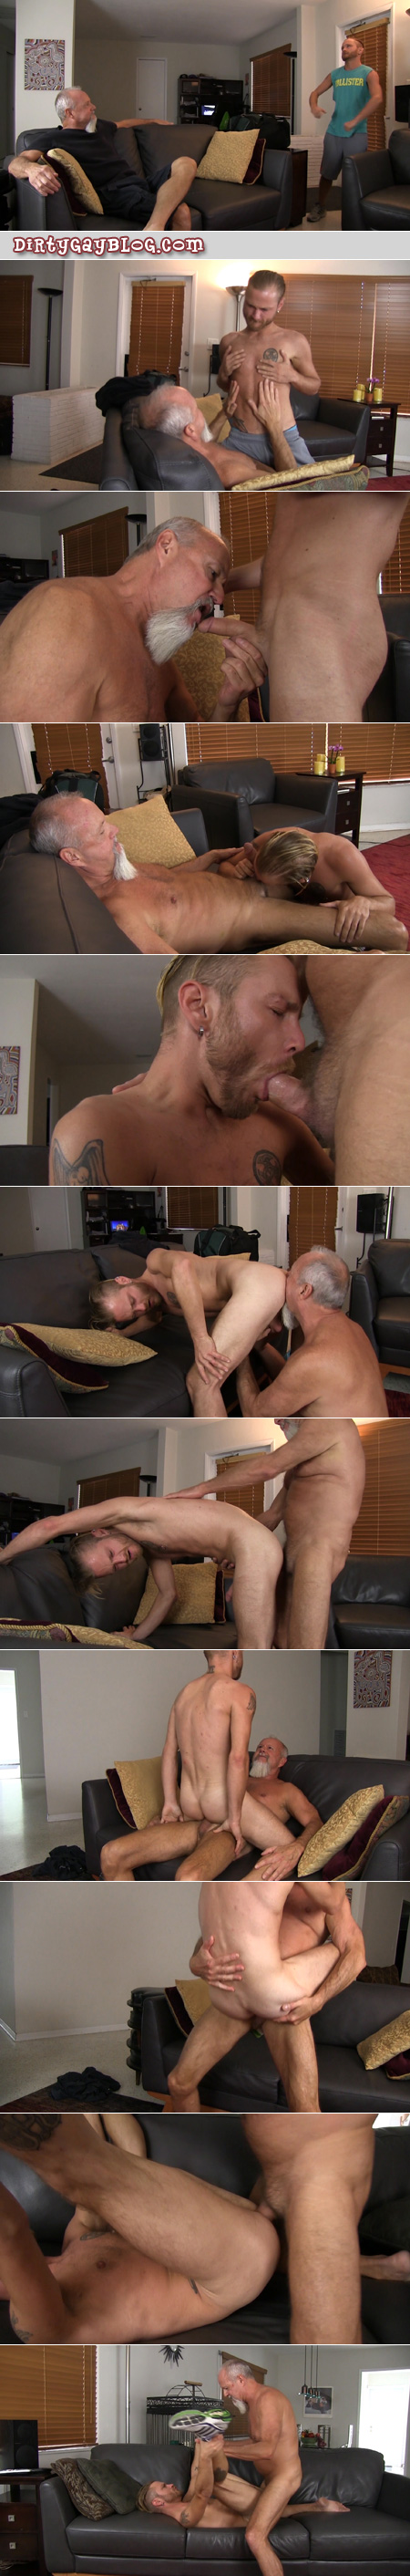 Granddaddy fucking a young guy bareback after he gets horny watching Daddies at the gym.